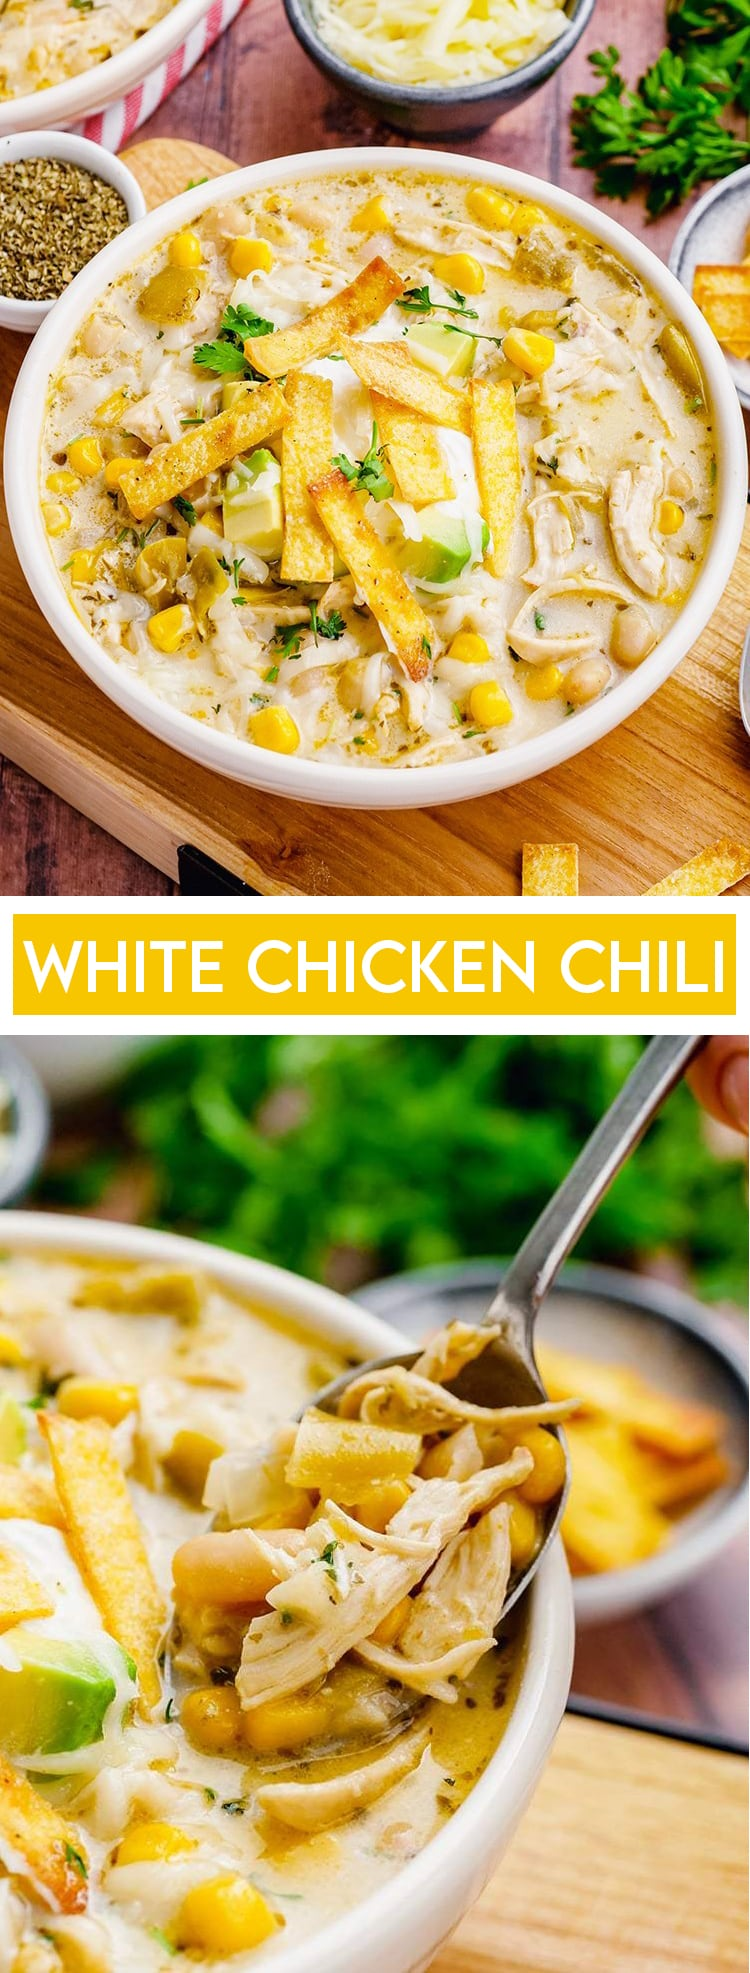 A bowl of white chicken chili with a text overlay below it saying white chicken chili, then another photo of a close up of the soup in a spoon.